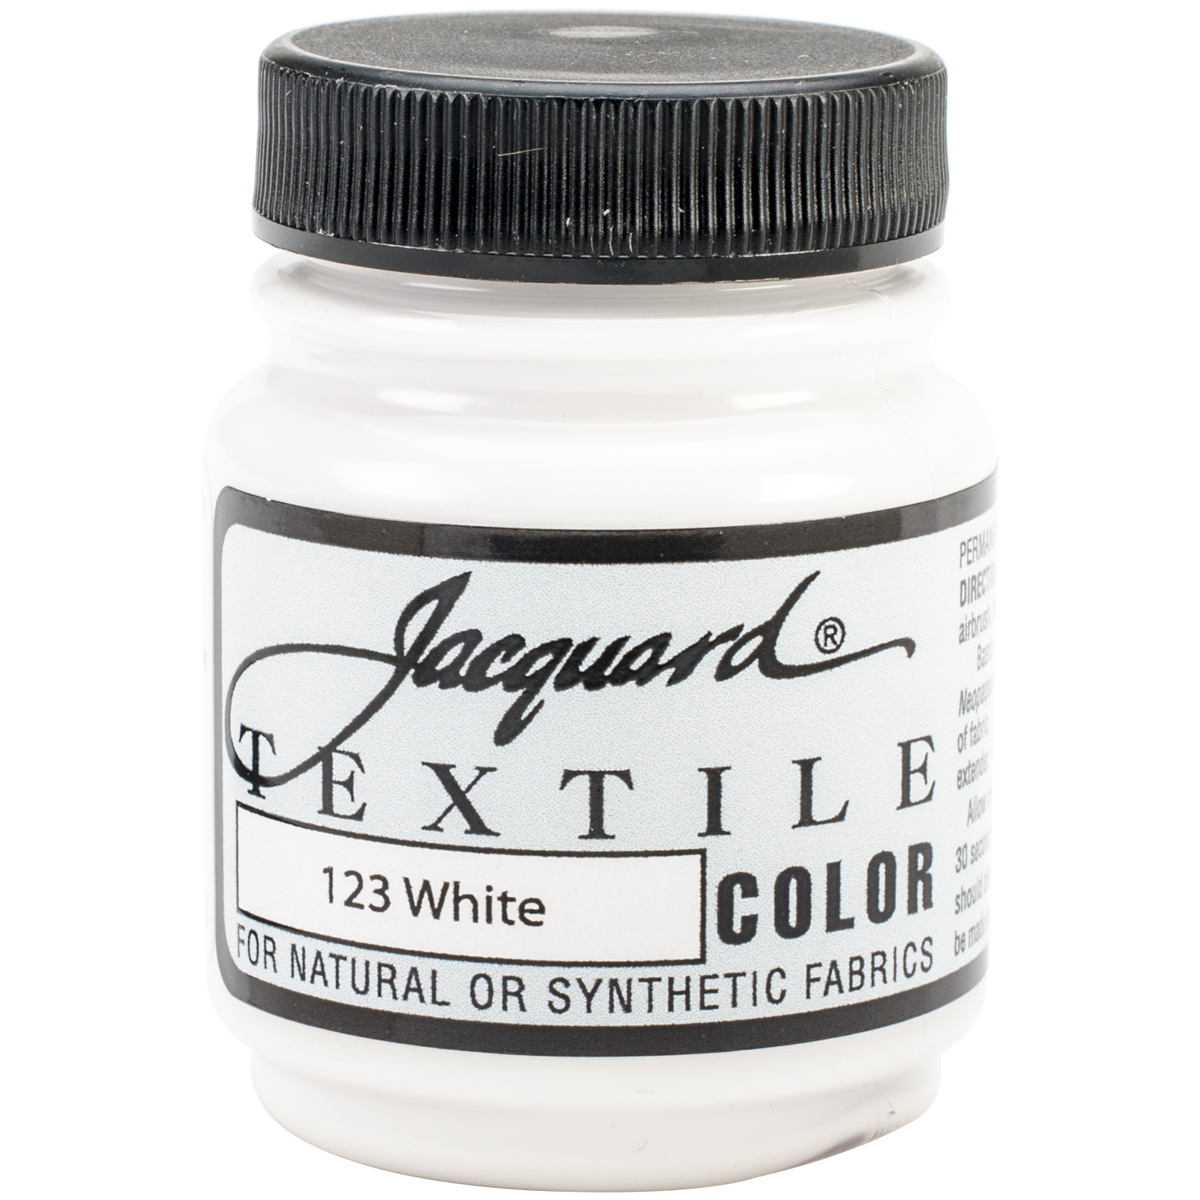 Jacquard Products Jacquard Textile Color Fabric Paint, 2.25-Ounce, White Multi-Colored